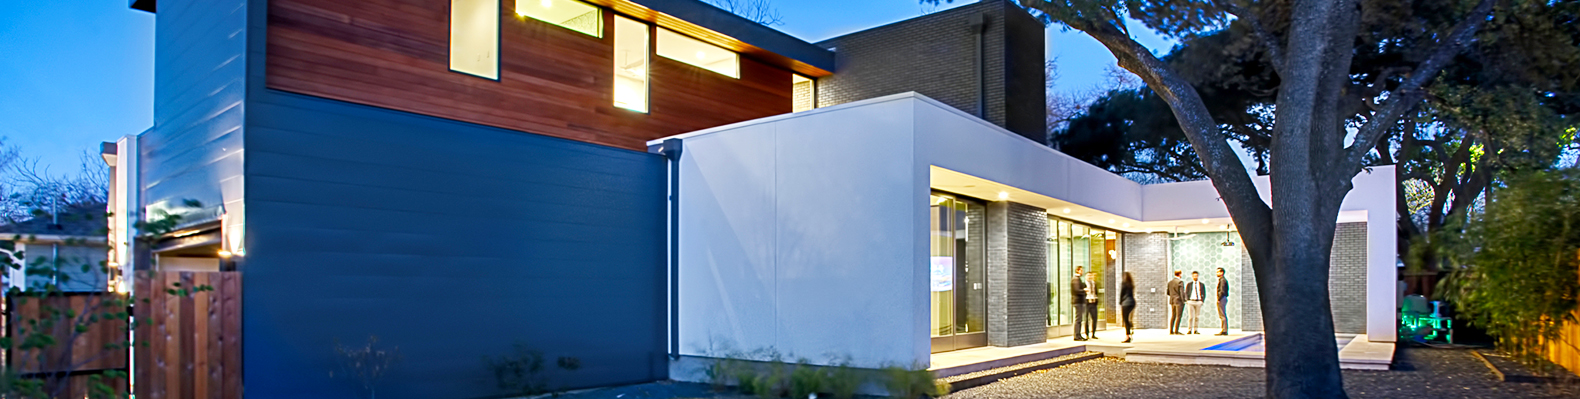 cool building an affordable home. Affordable Main Stay House in Austin keeps occupants cool without air  conditioning Inhabitat Green Design Innovation Architecture Building